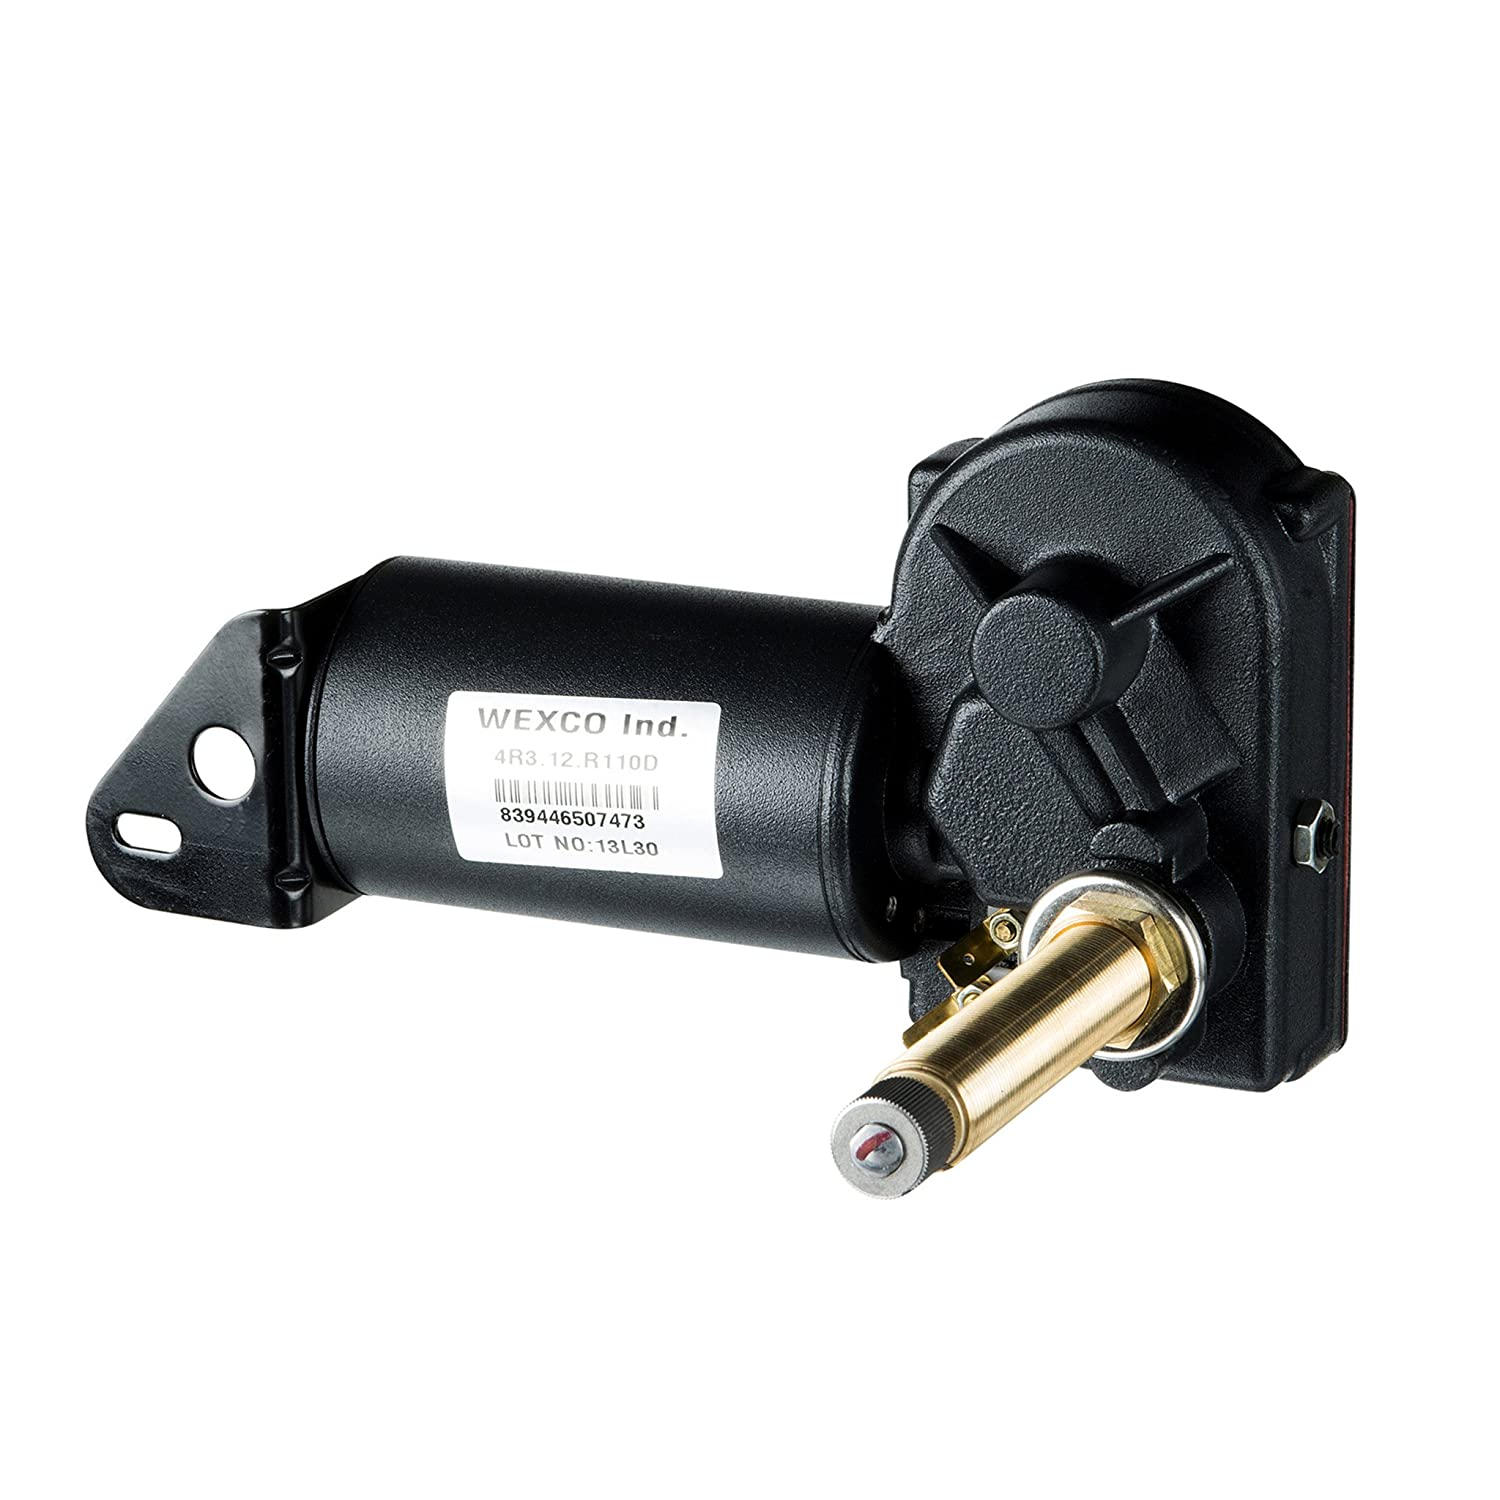 One and a half inch 4R1.24.R110D shaft 1.5 24V Wexco Wiper Motor